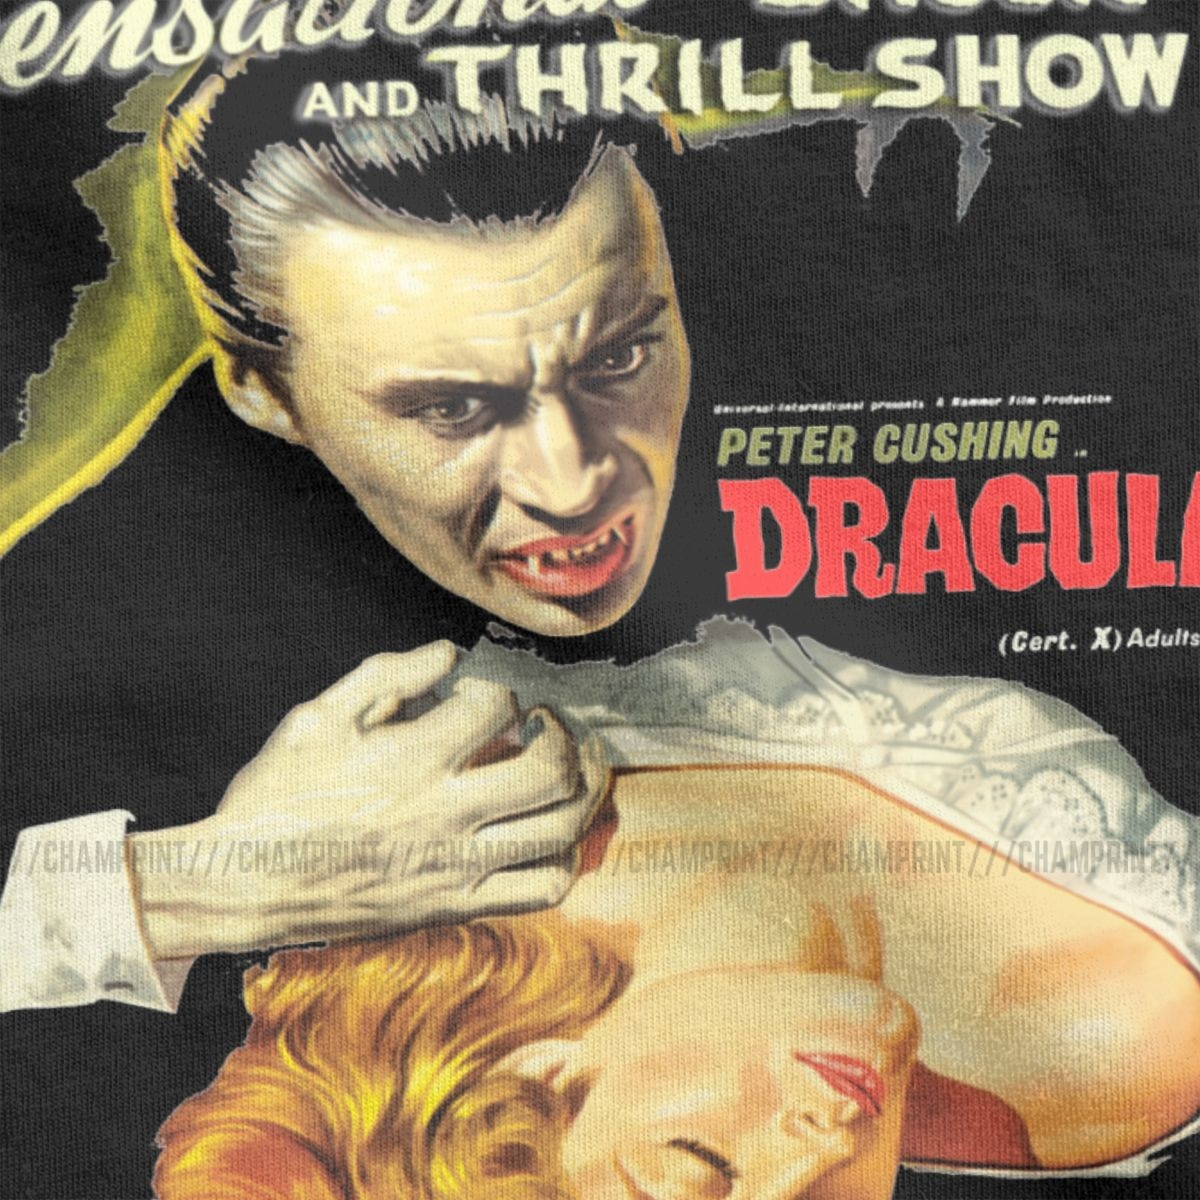 Men's Dracula Original Hammer Poster 1958 T Shirt The Mummy Horror Movie 100% Cotton Tops Vintage Round Collar Tees 6XL T-Shirts